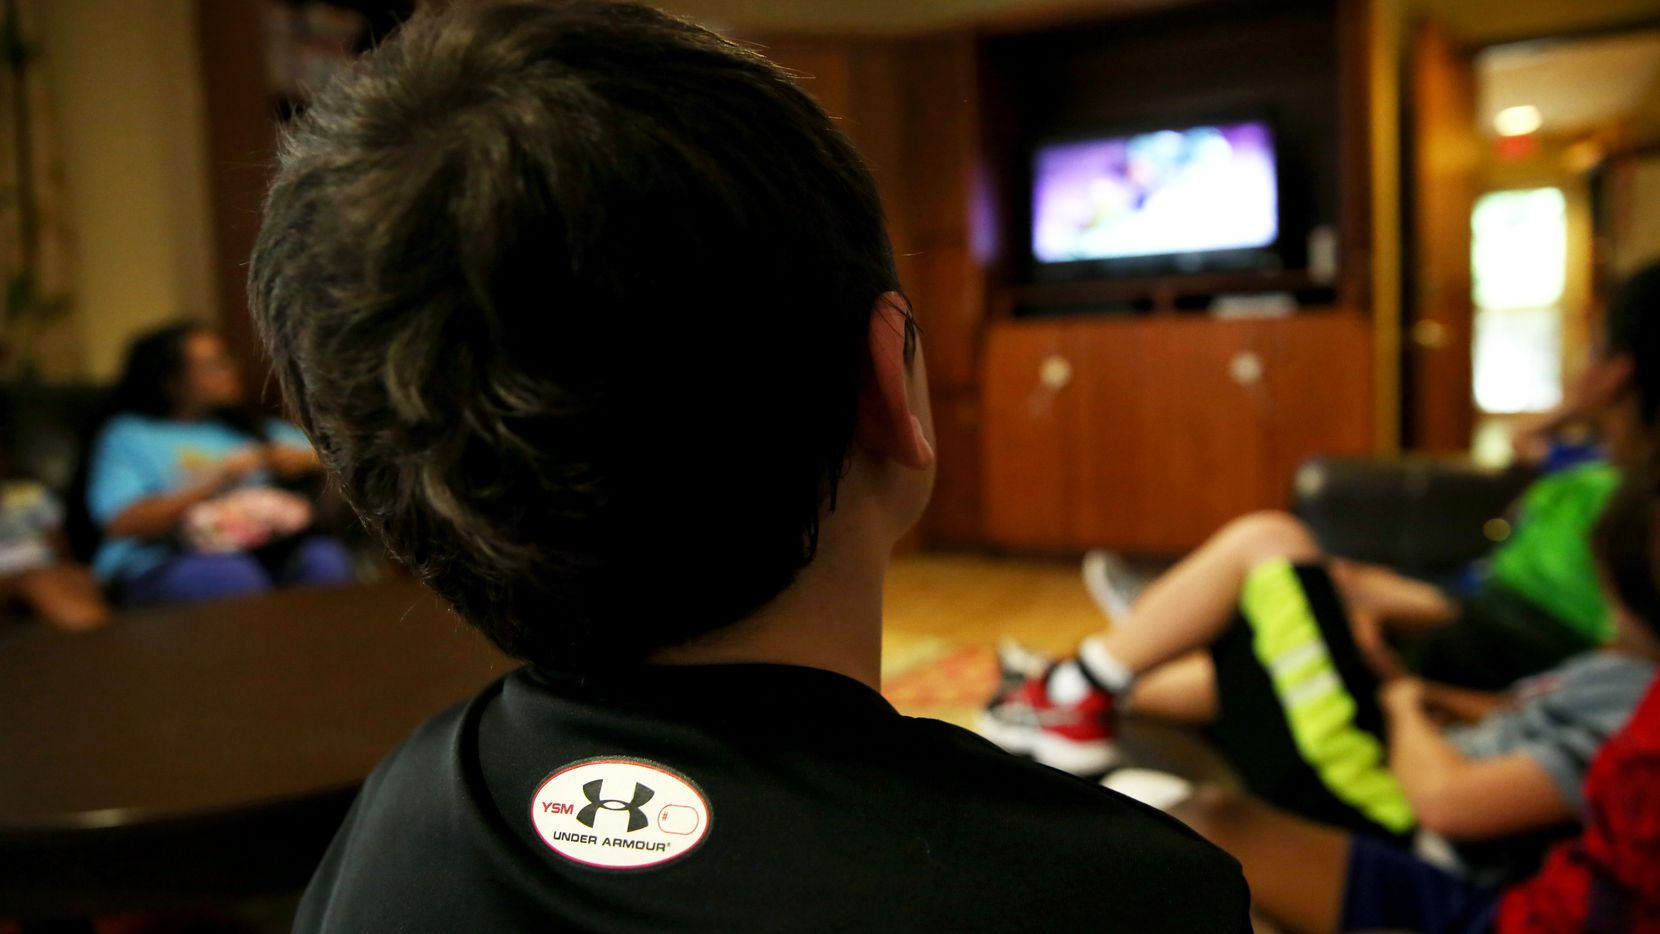 A boy watches TV at Jonathan's Place, which serves abused and neglected children, in Garland.